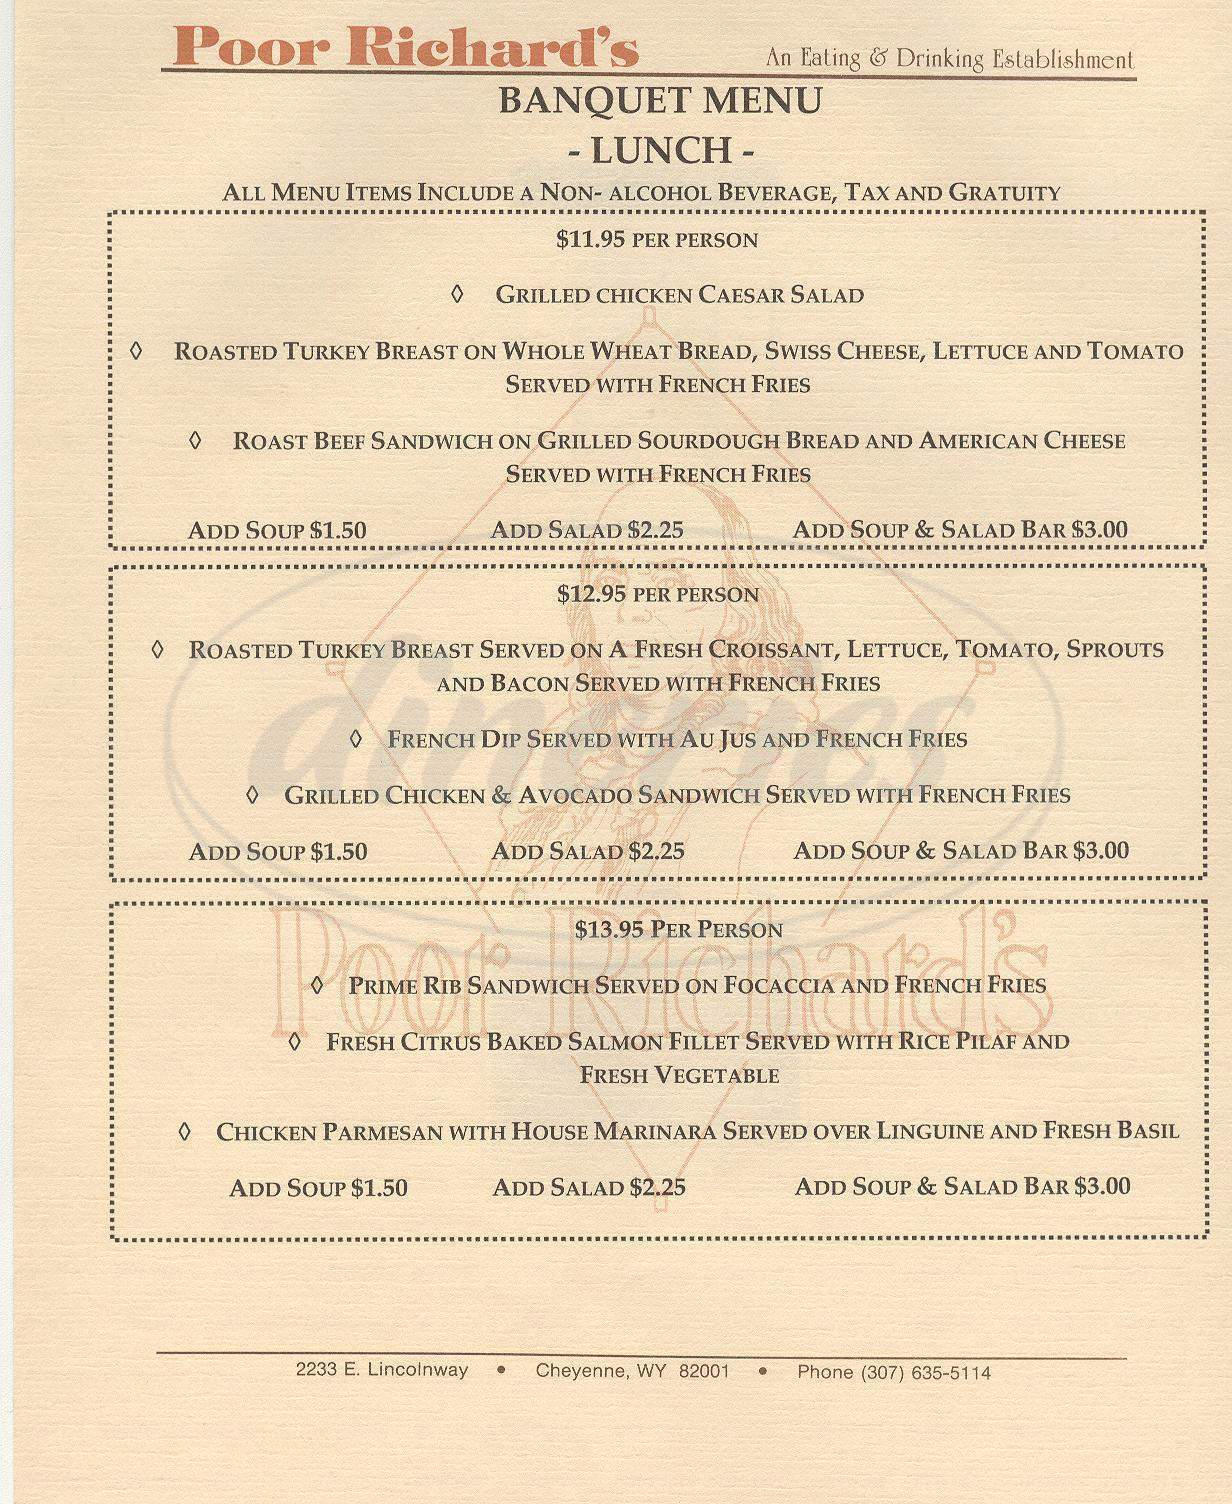 menu for Poor Richard's Restaurant